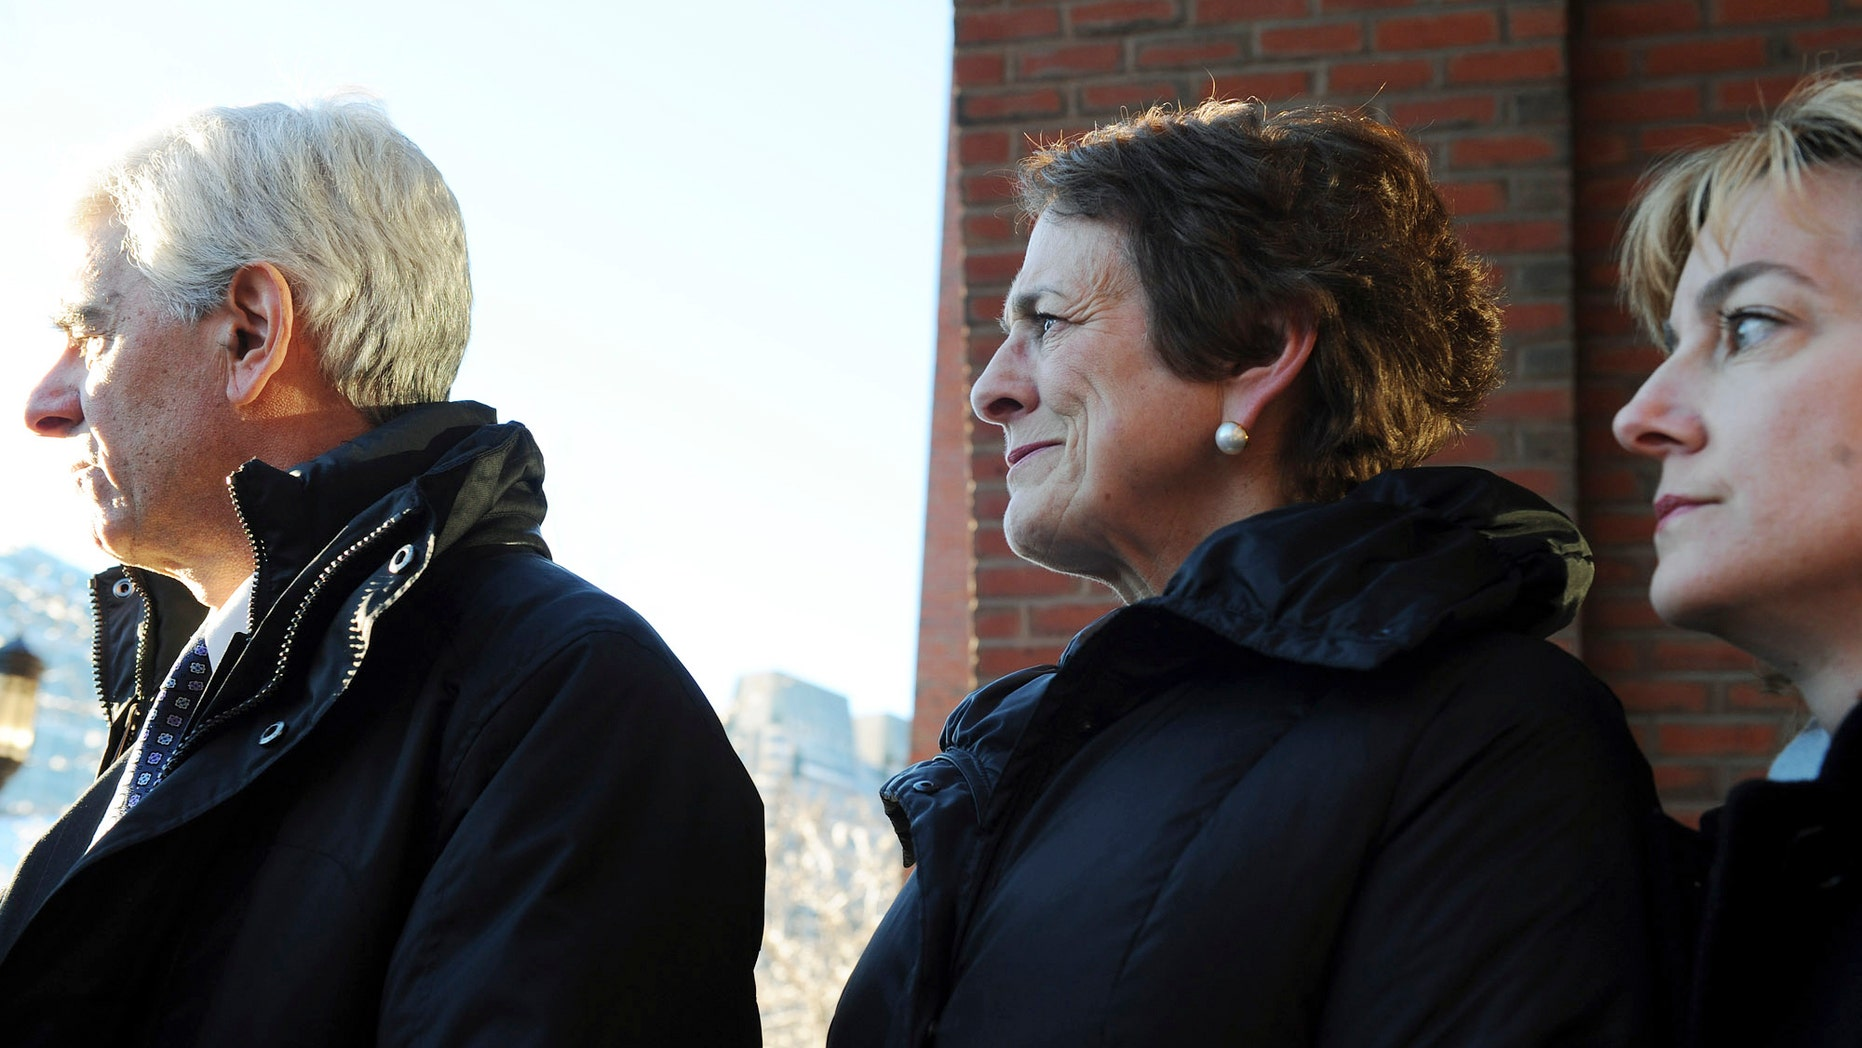 Jan. 13: Patrice Tierney, center, wife of state Rep. John Tierney, is flanked by her lawer Donald Stern. left, and her spokesperson Jennifer Flagg, right, as she leaves federal court in Boston. Patrice Tierney was sentenced to 30 days in prison for tax charges related to helping her brother conceal income from an illegal offshore gambling business.